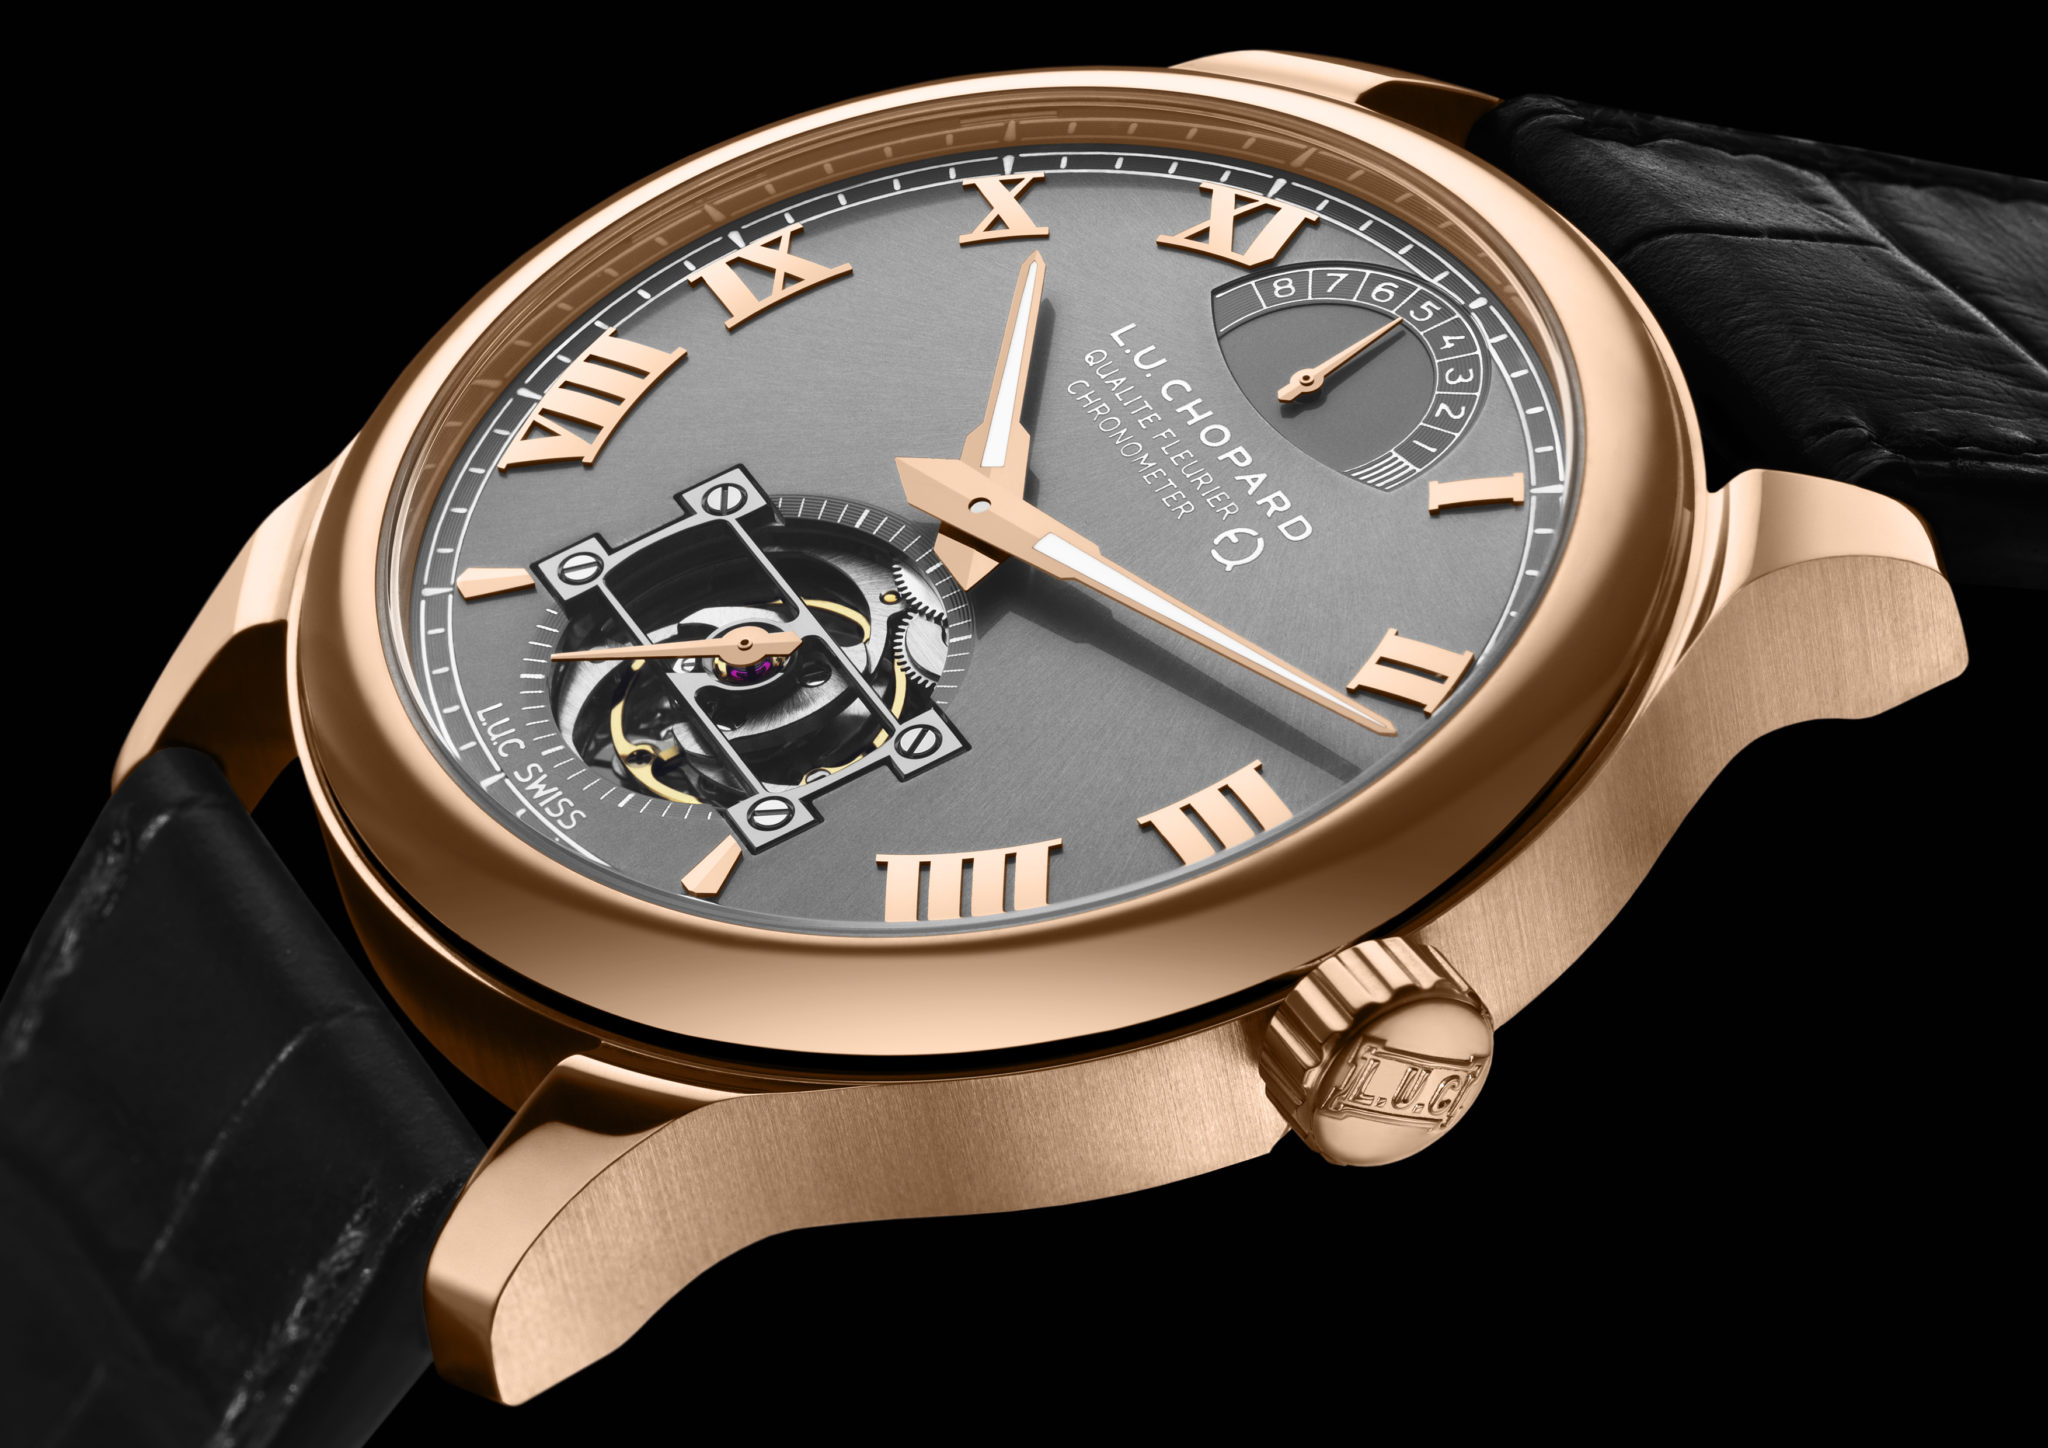 The first watch made with Fairmined gold, the L.U.C Tourbillon QF Fairmined